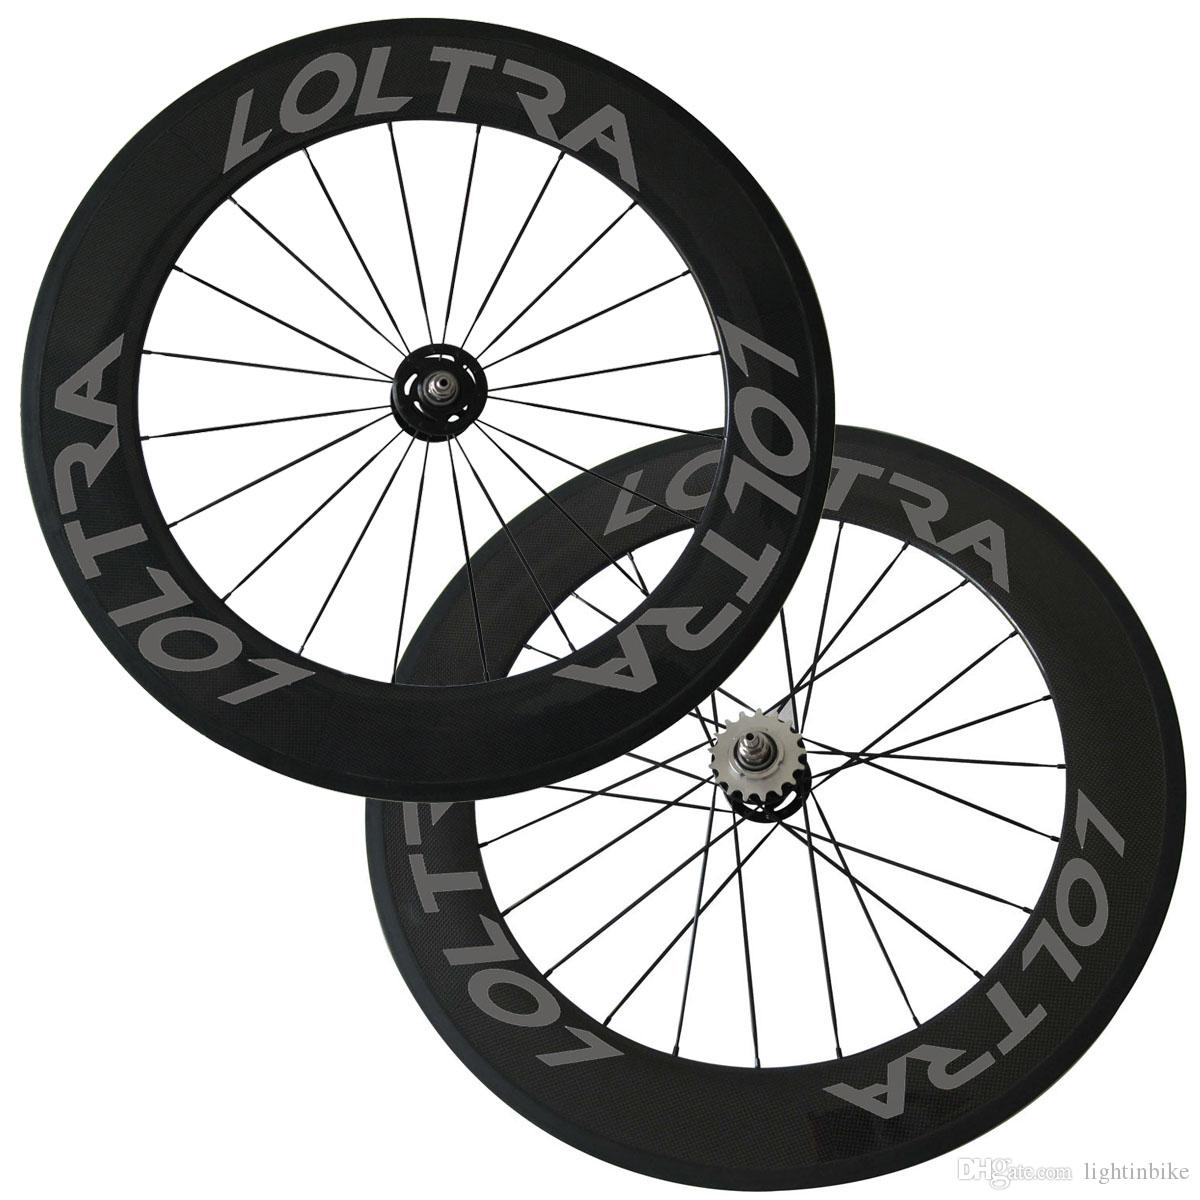 88mm Clincher Tubular Track Bike Wheelset Carbon wheels Track Bike Wheels Fixed Gear Free Gear Single Speed Bicycle Wheelset